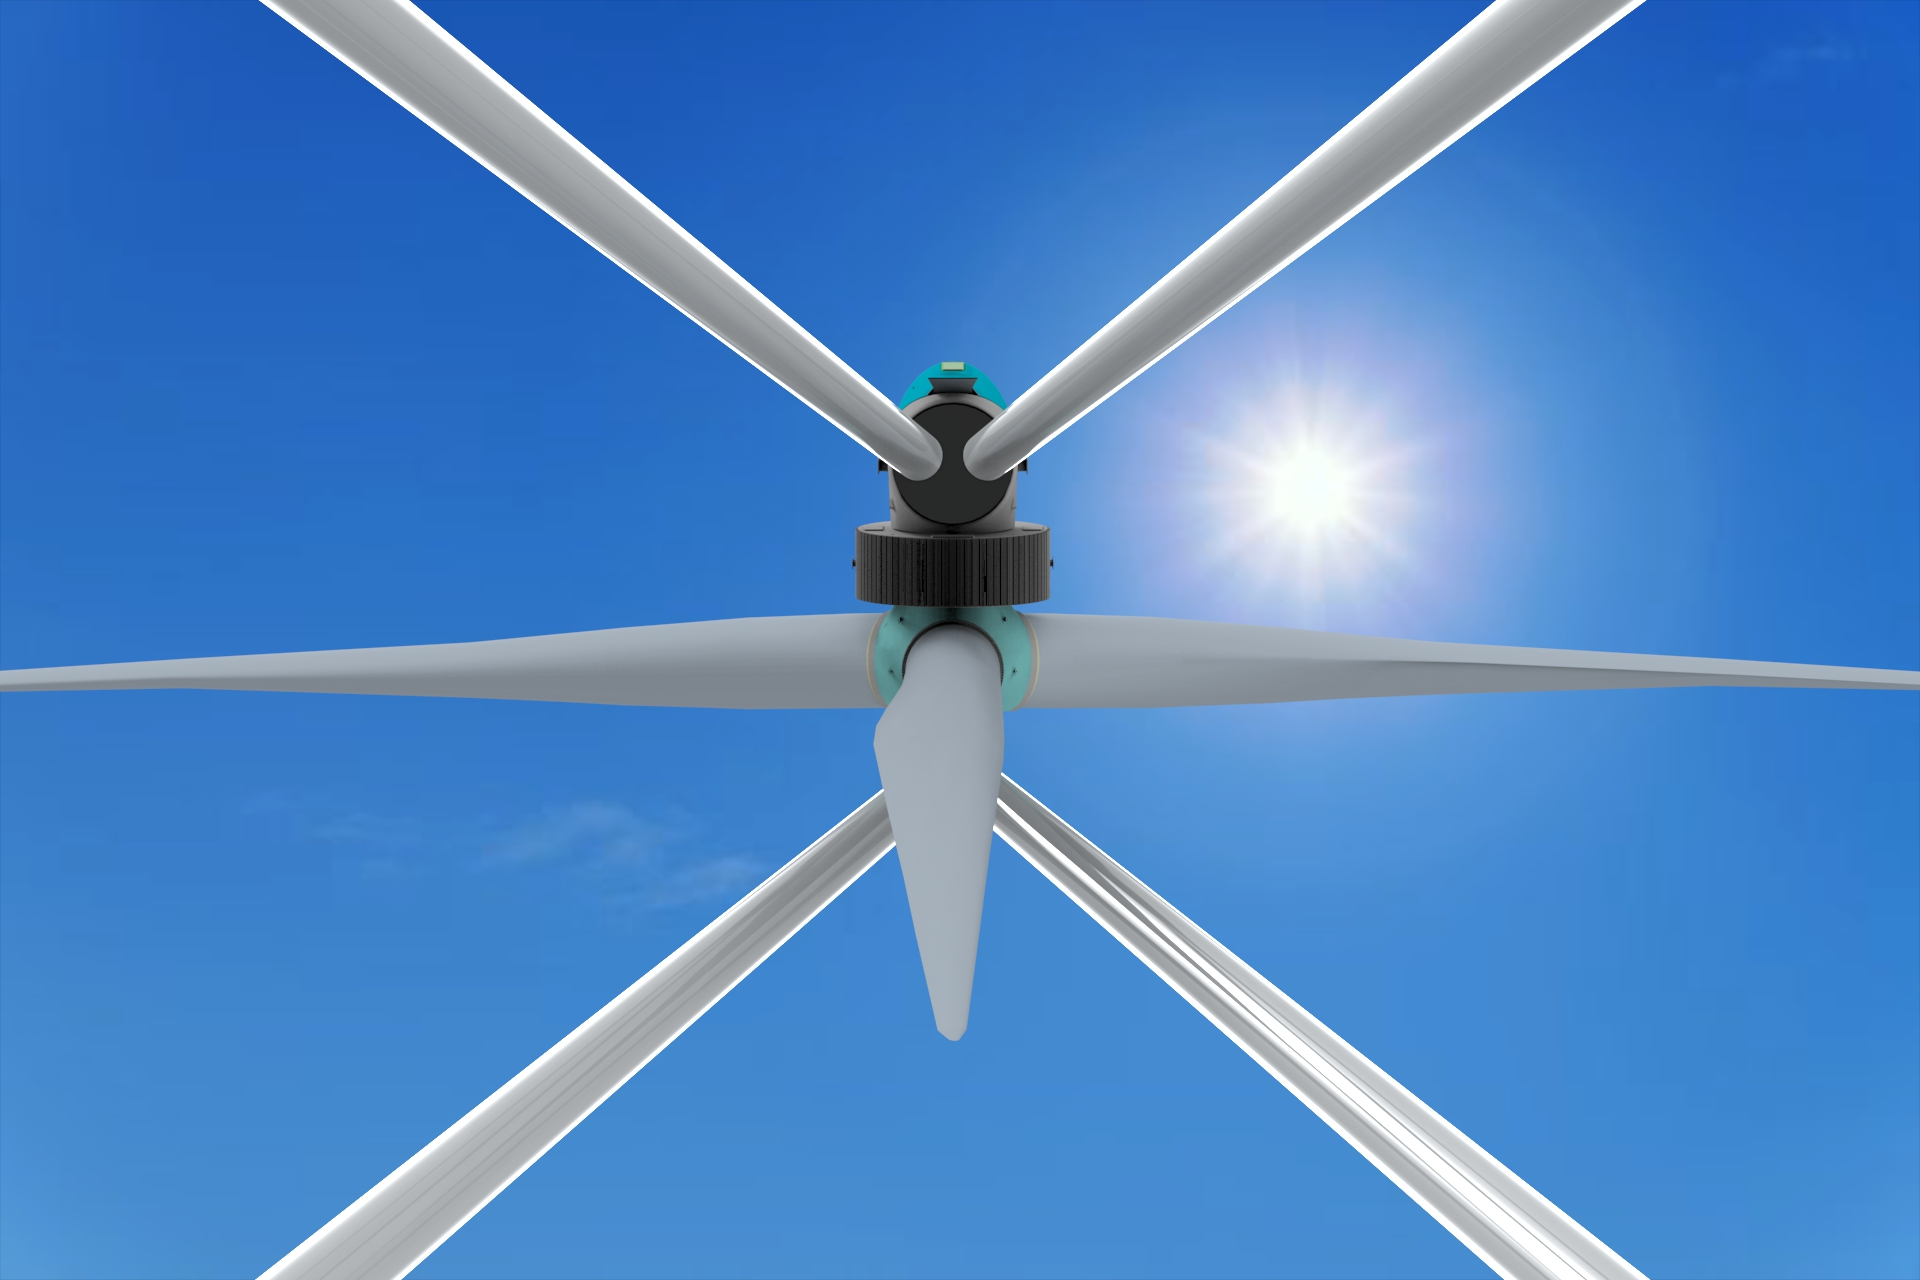 Image of Eolink's 5 MW floating wind turbine model, showing the top part with blades in focus